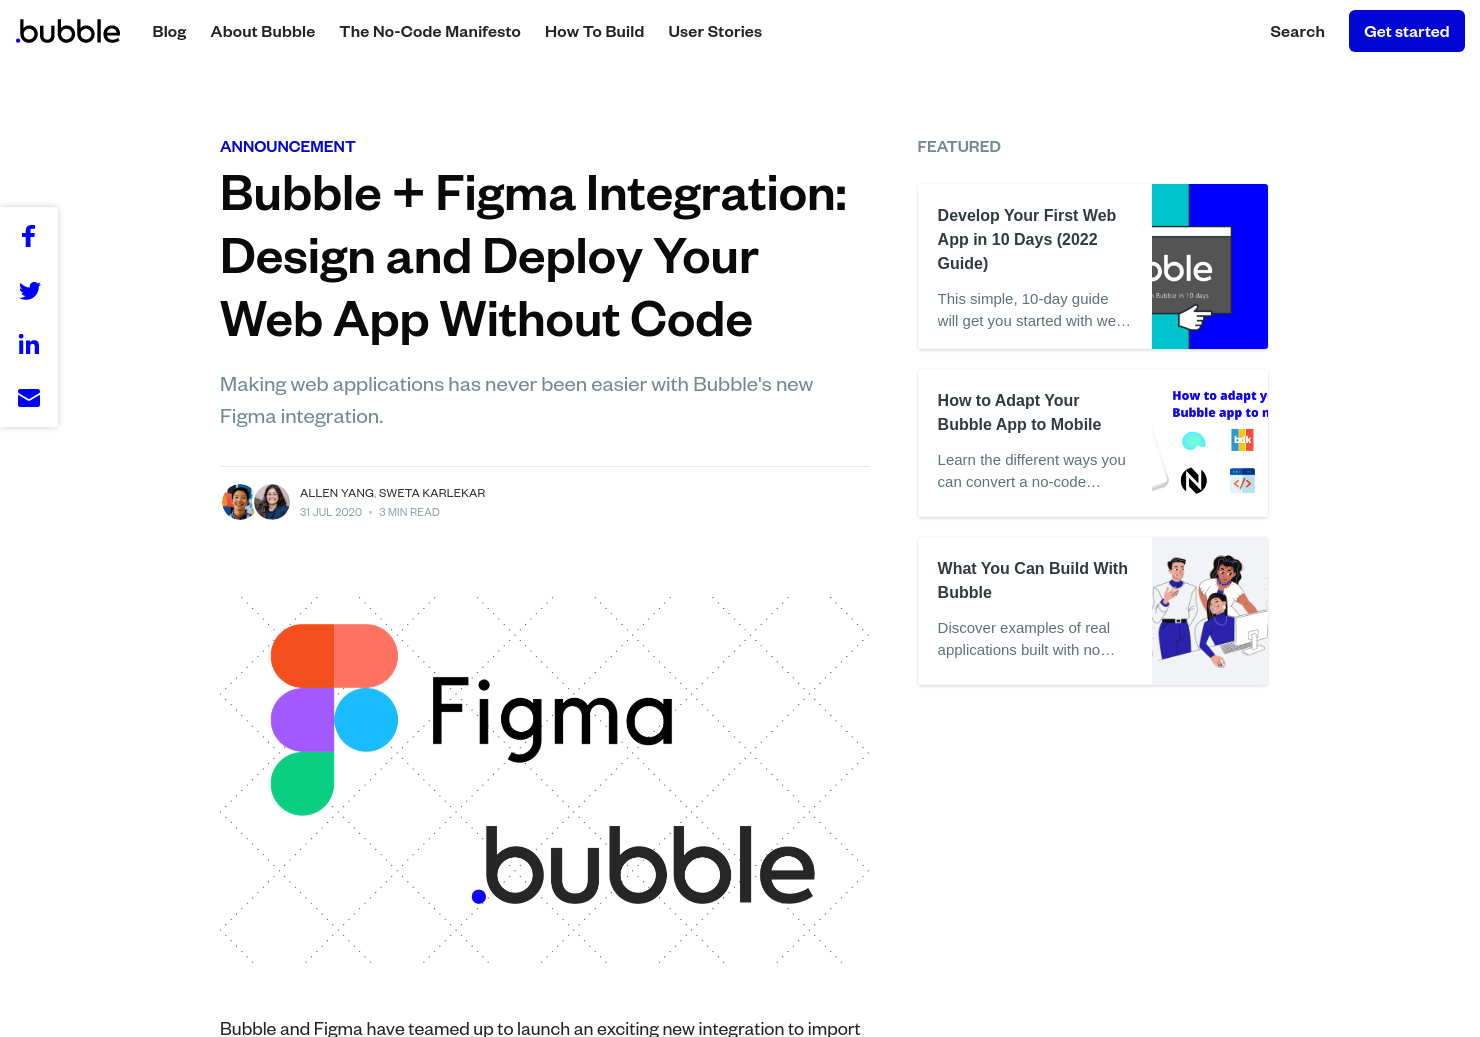 Bubble + Figma Integration